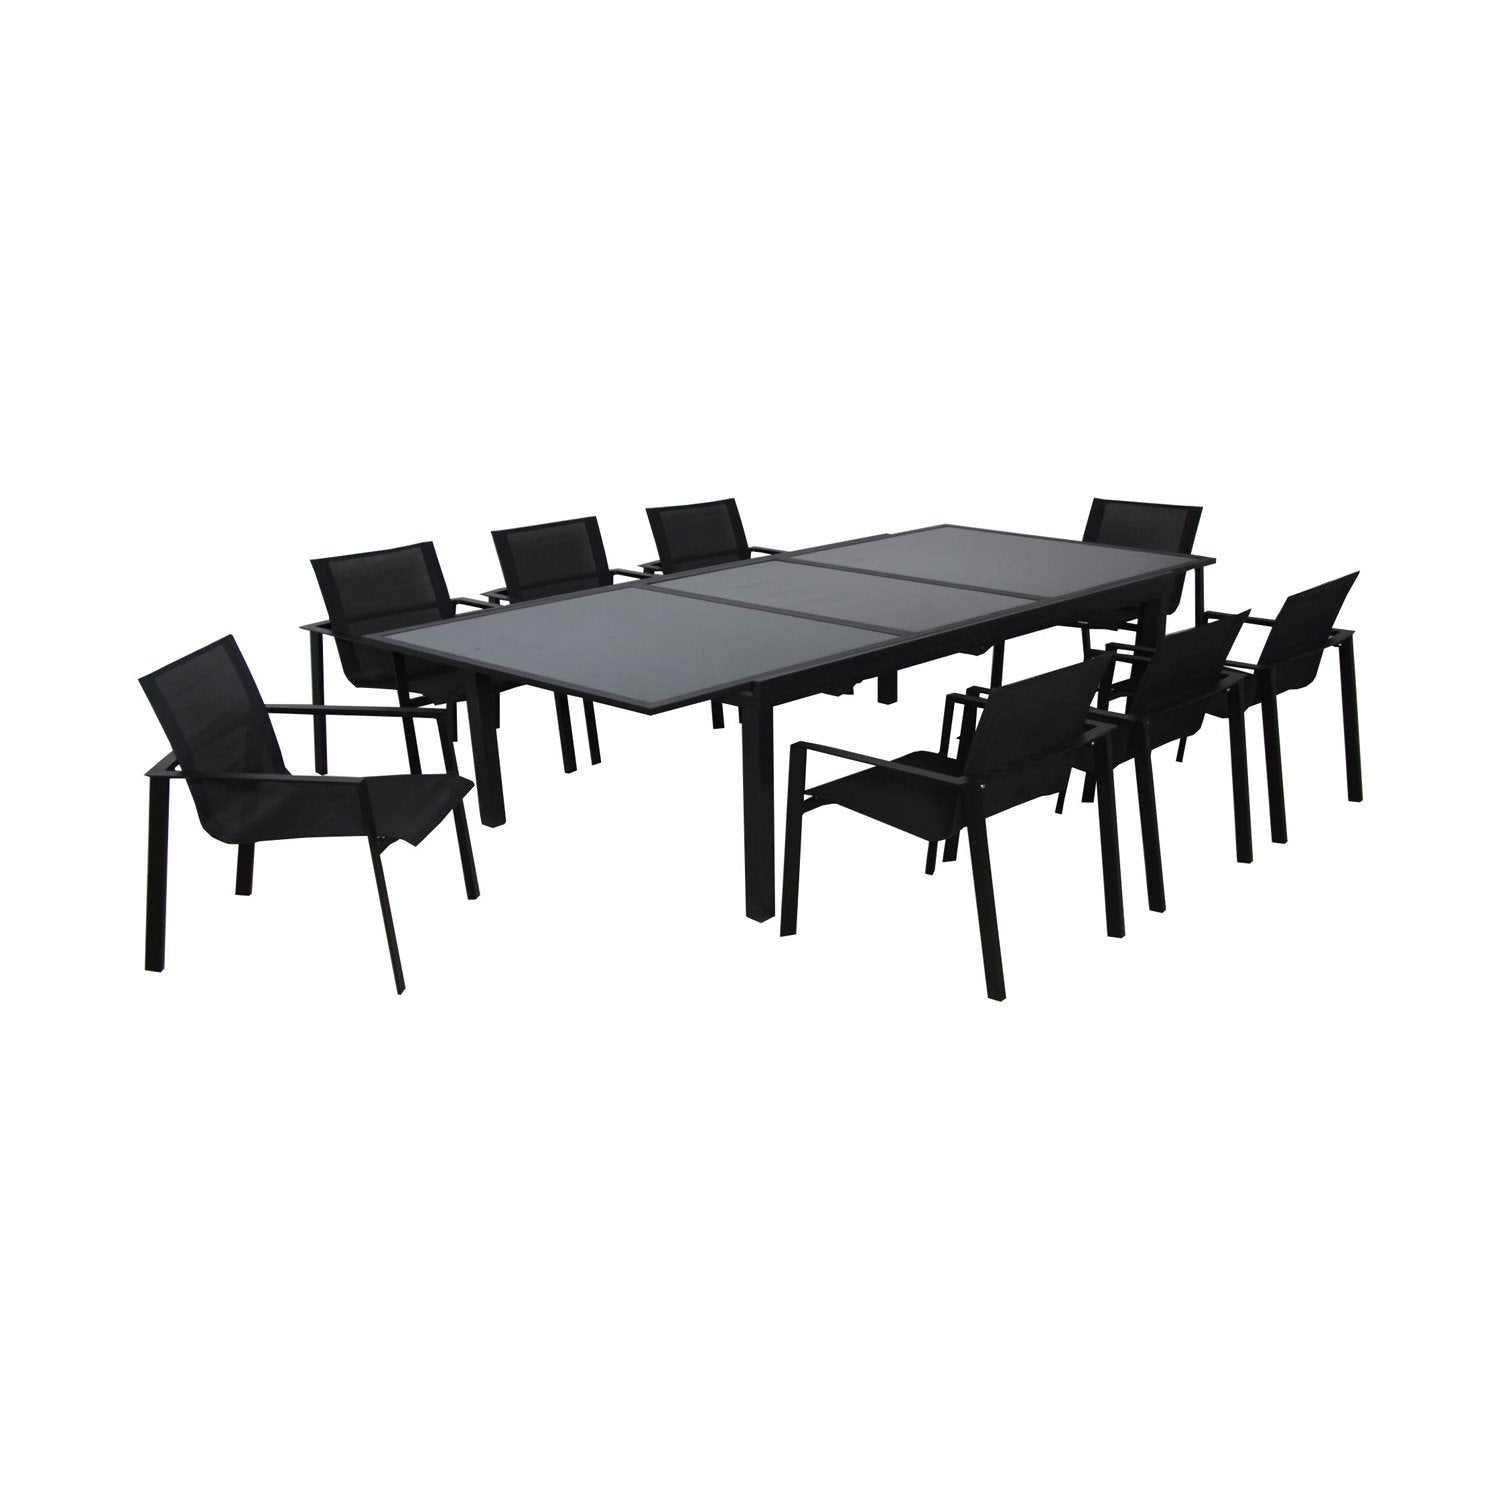 table de jardin miami rectangulaire noir 8 personnes. Black Bedroom Furniture Sets. Home Design Ideas